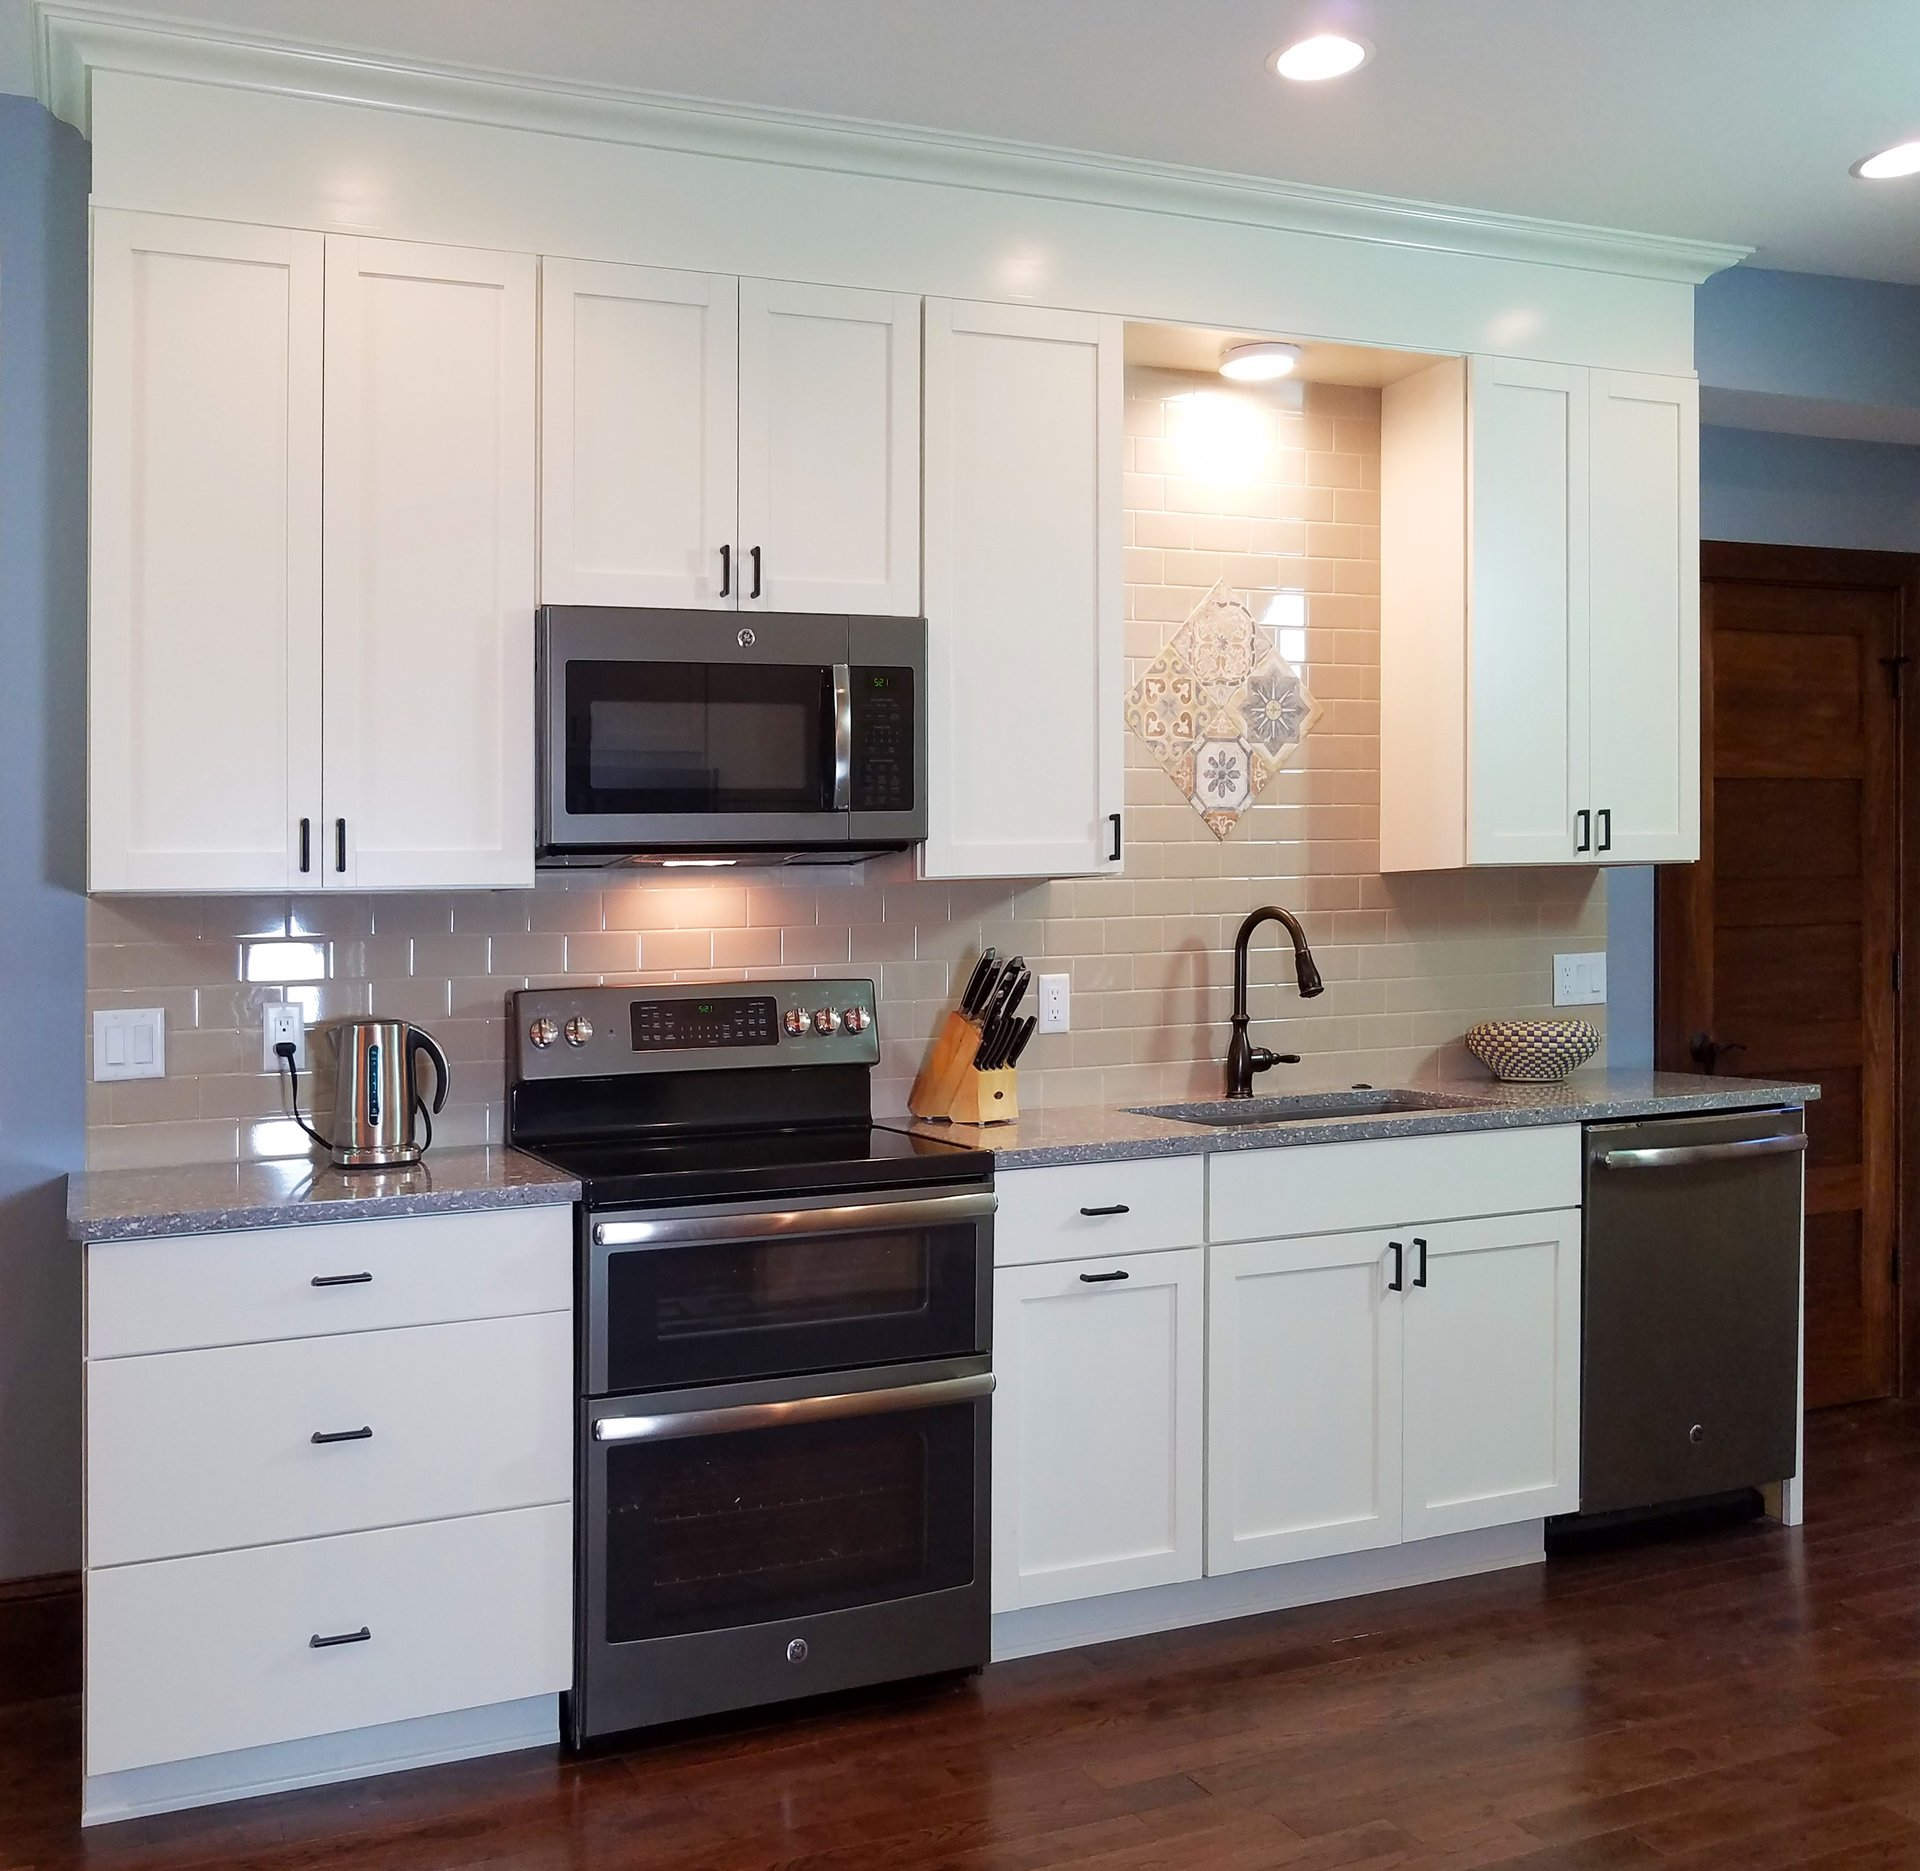 Graphite Hardwood Floor In White Cabinet Kitchen Luxury Home Design